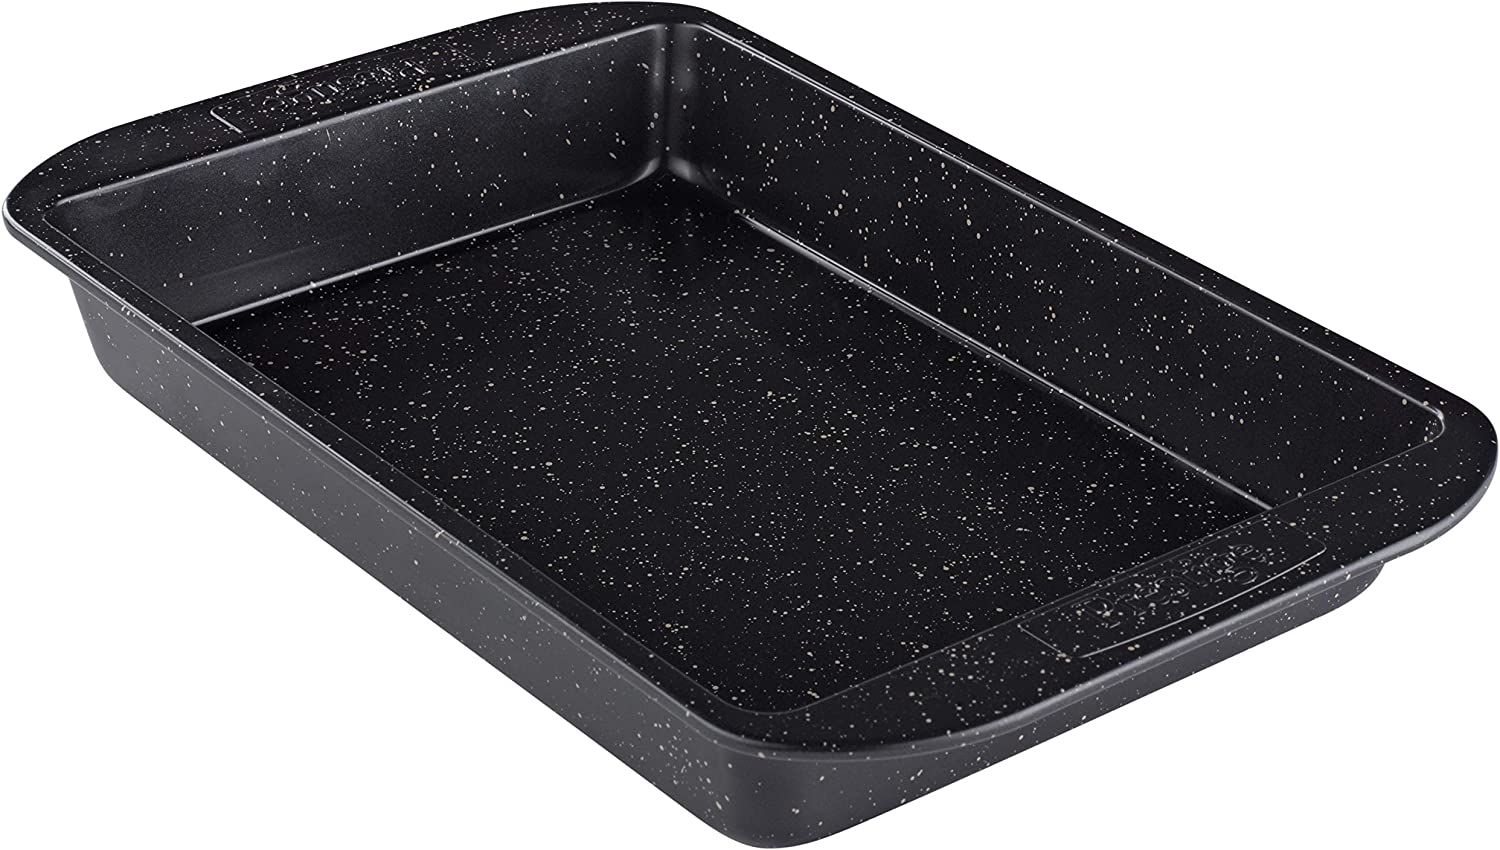 Prestige 47727 Nonstick Pan Cookie Baking Sheet, 12.5 Inch, Black with Gold Speckle